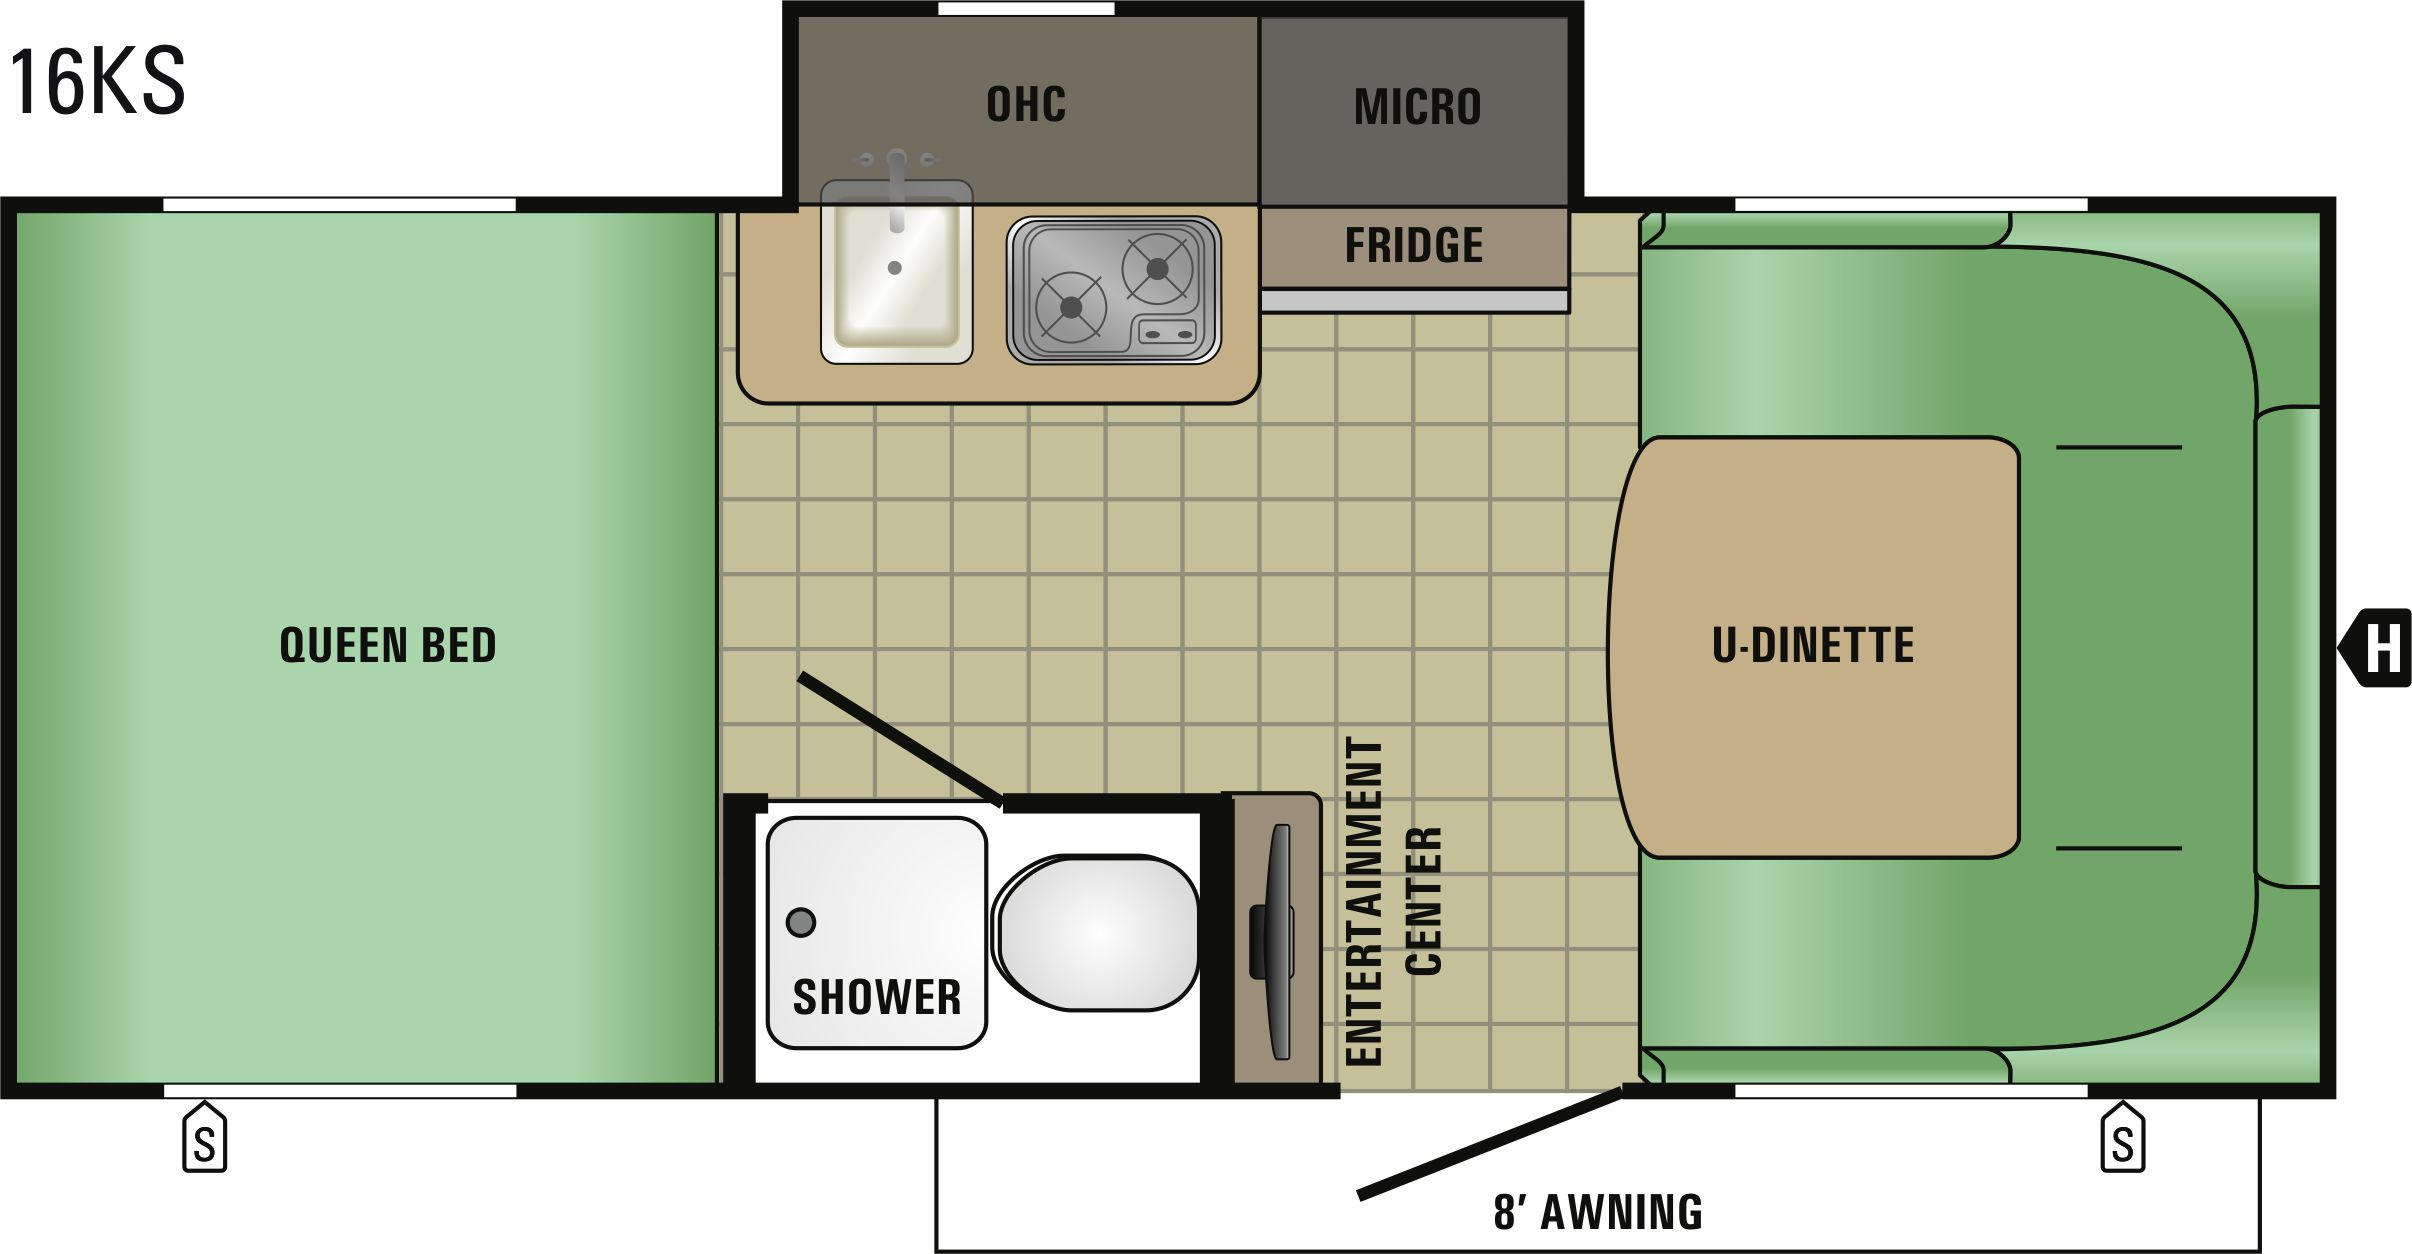 16KS Floorplan